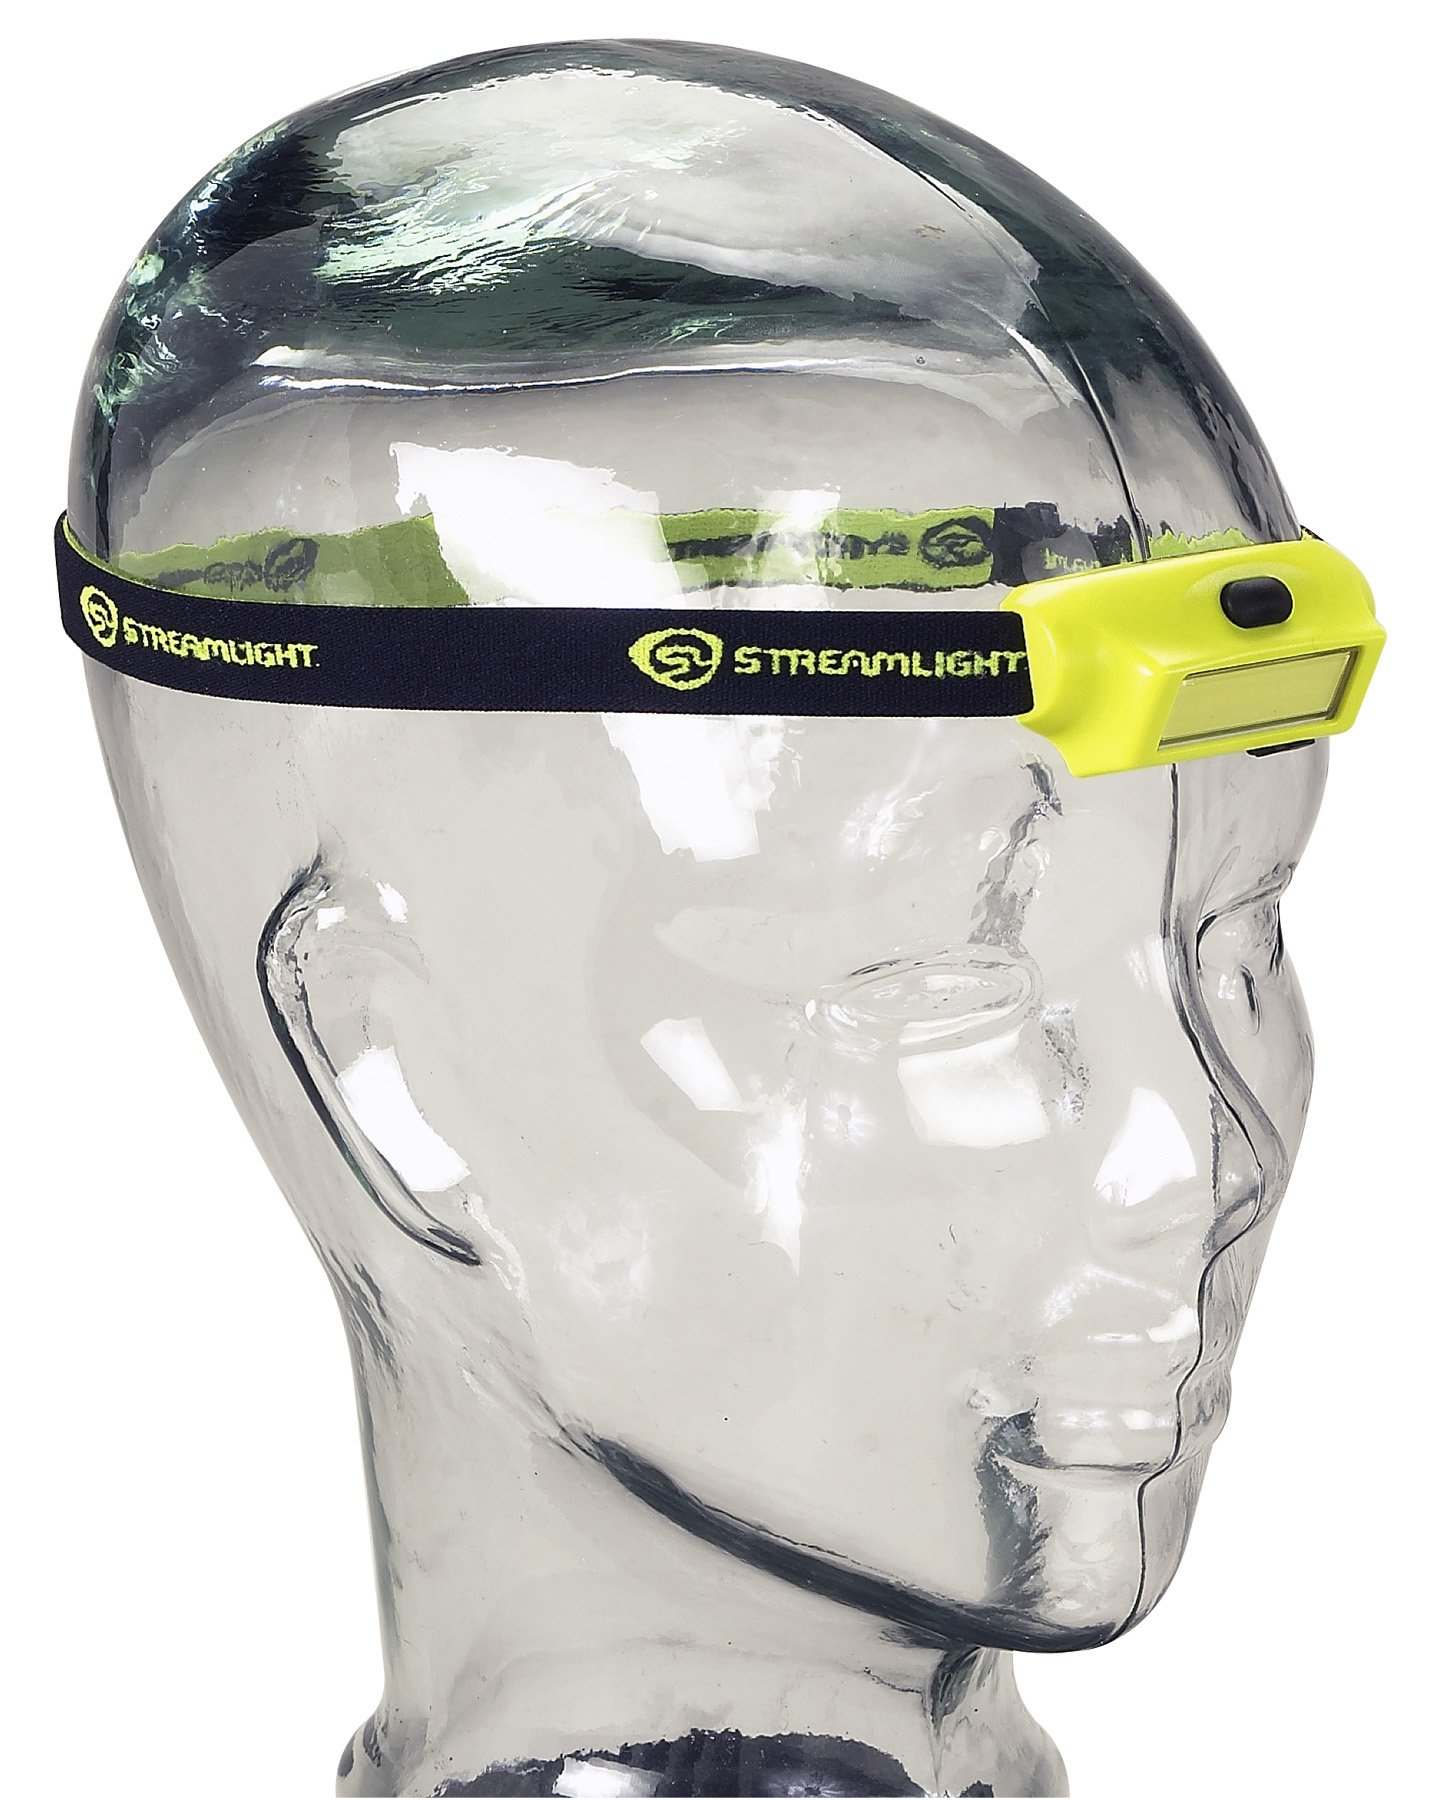 Streamlight 61702 Bandit - includes headstrap, hat clip and USB cord, Black - 180 Lumens by Streamlight (Image #6)